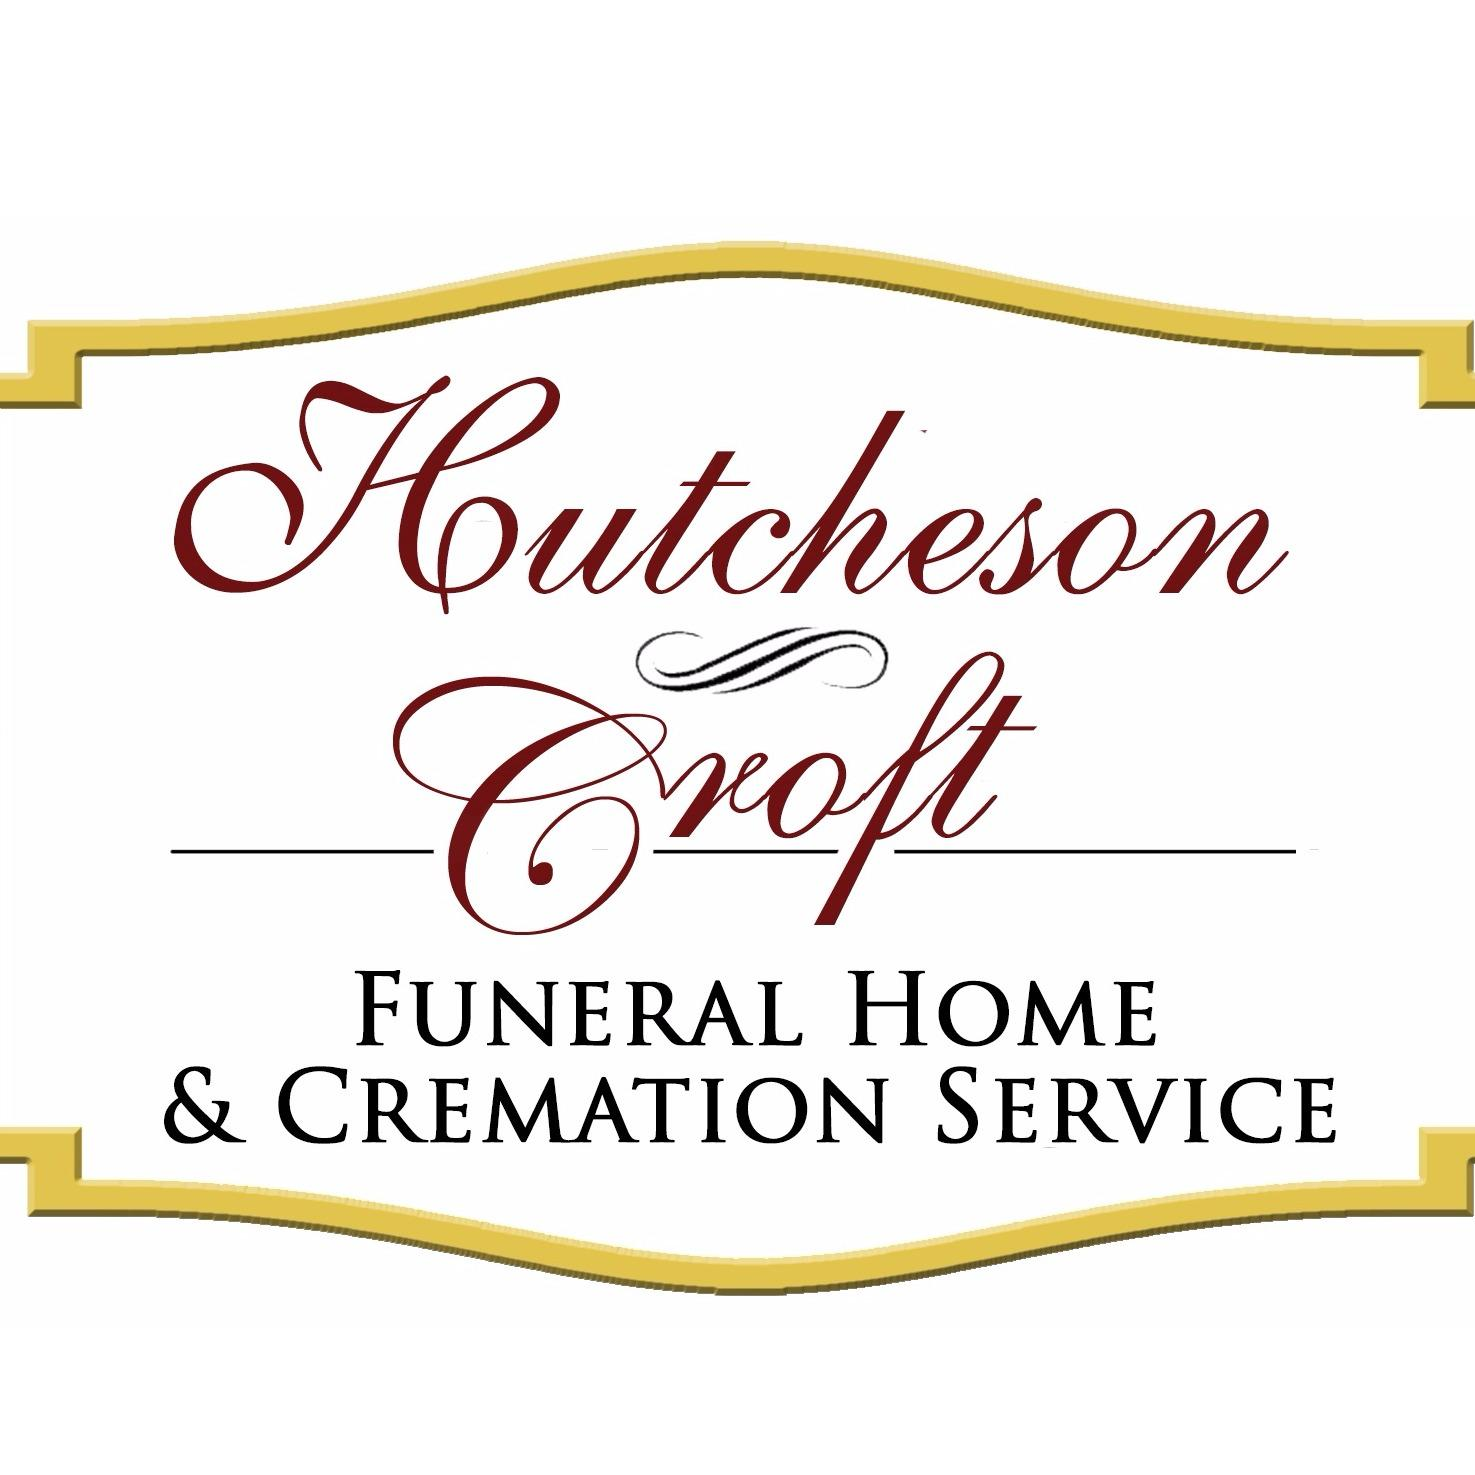 Hutcheson-Croft Funeral Home and Cremation Service image 3